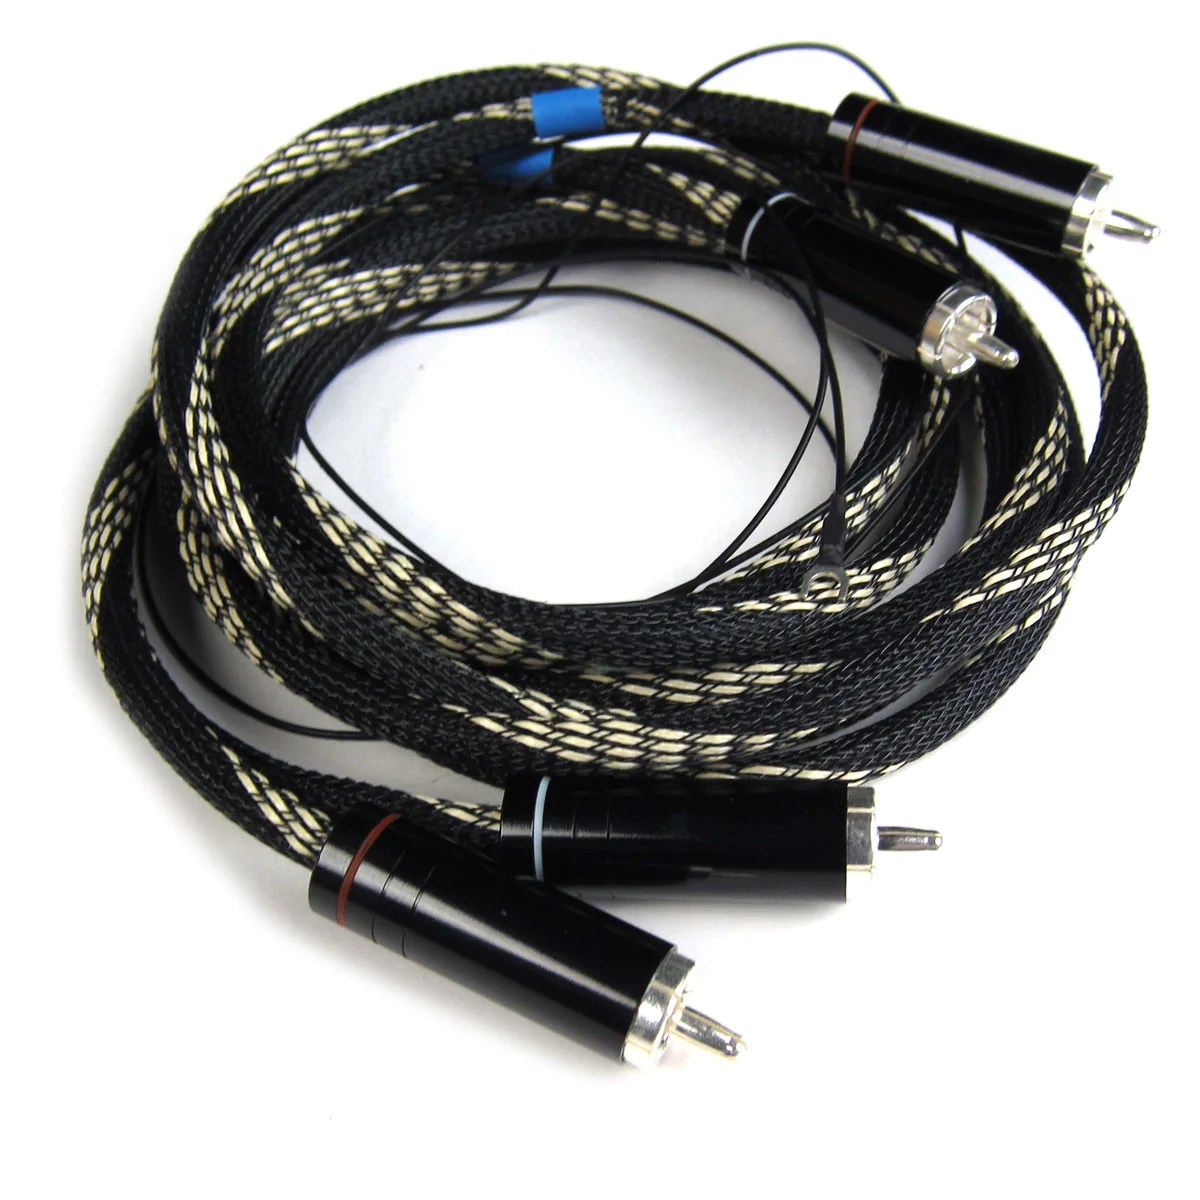 pro ject connect it rca phono interconnect cable 4 ft 1 2m [ 1200 x 1200 Pixel ]